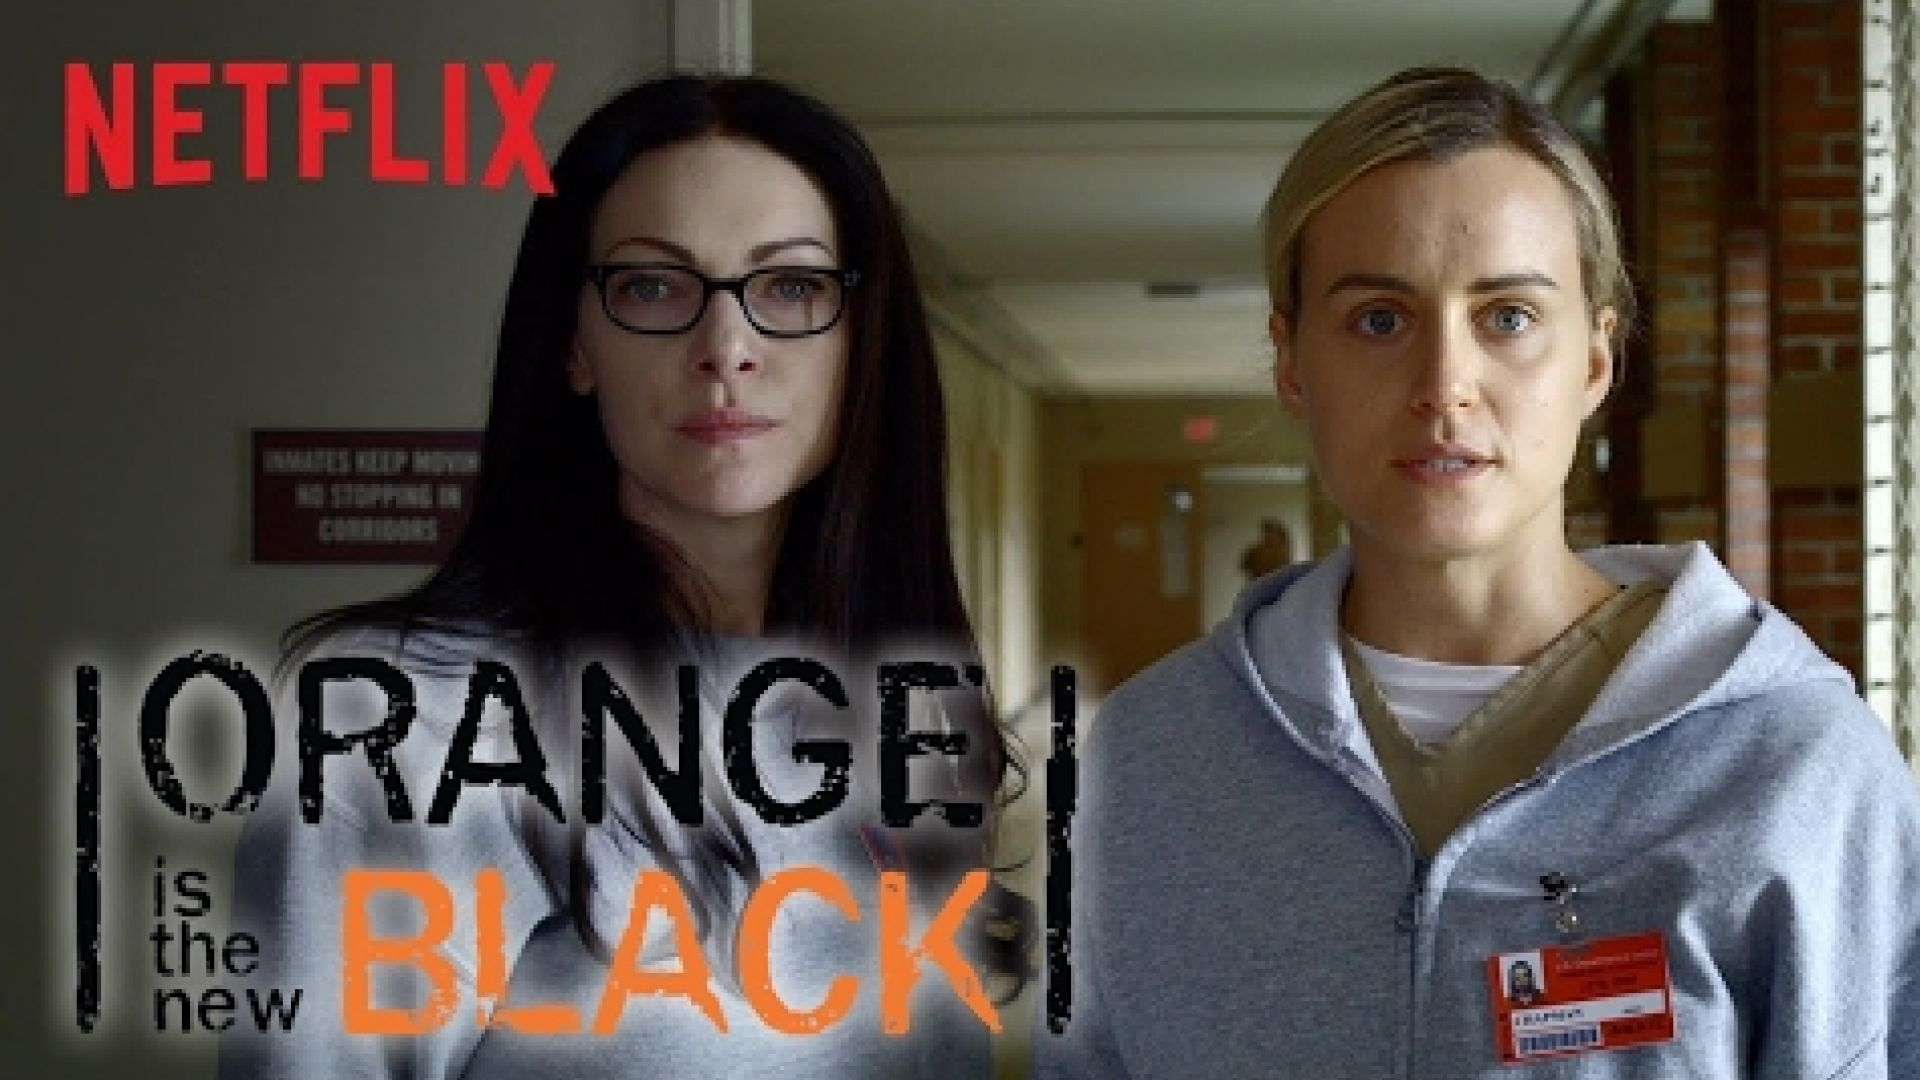 Final Trailer for 'Orange Is the New Black' Season 5, which